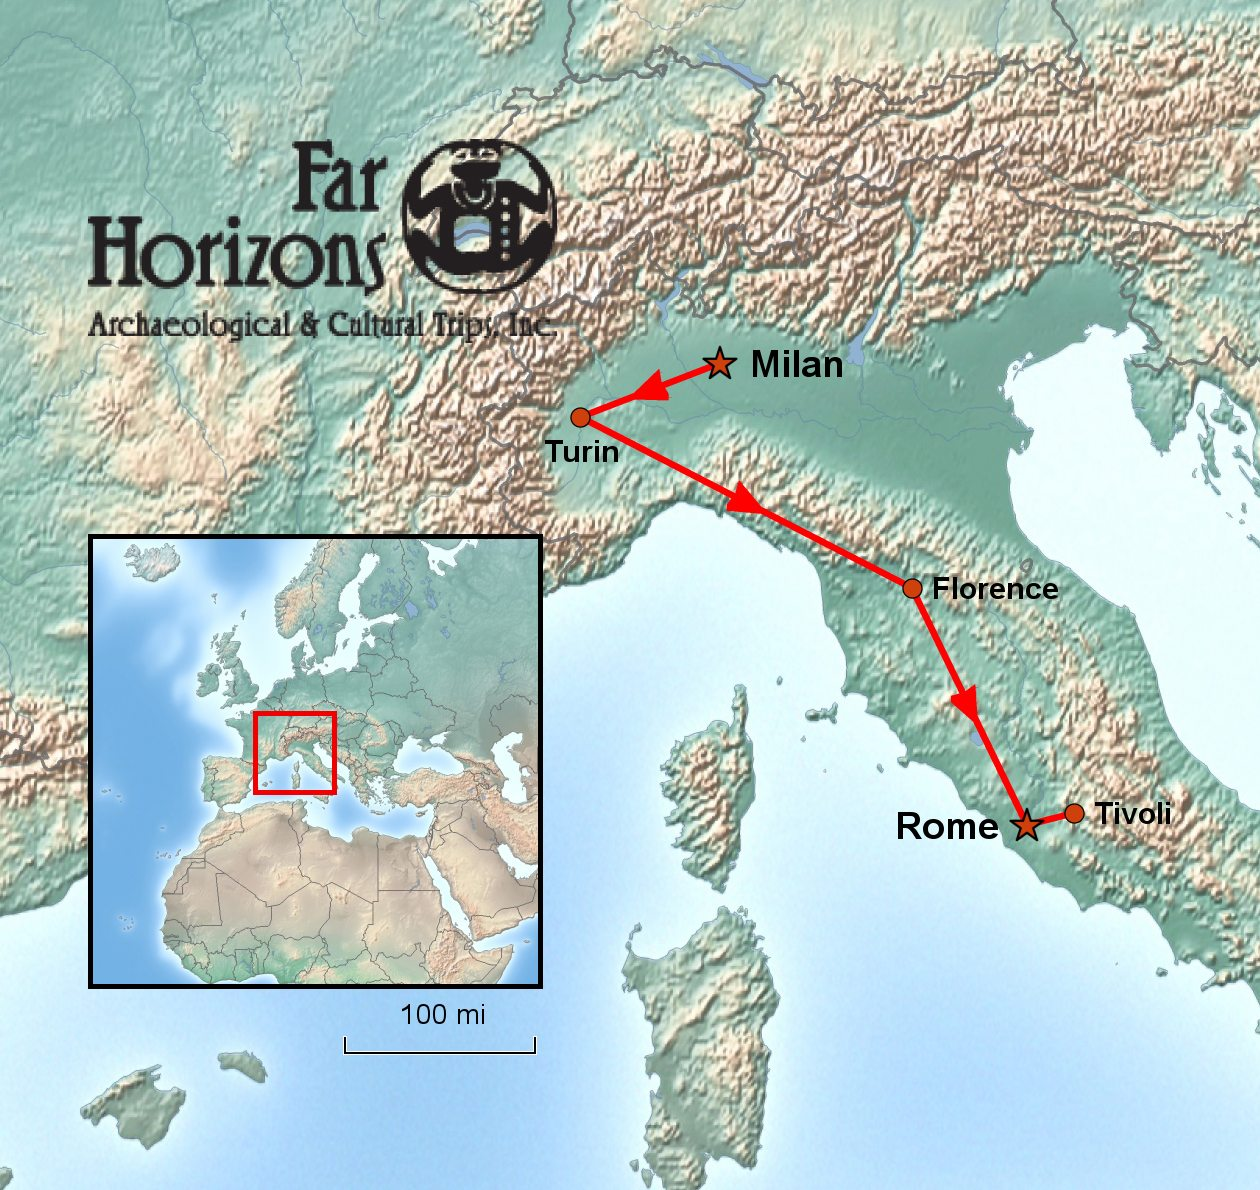 Egypt In Italy Tour Turin Florence Rome Far Horizons - Egypt and rome map